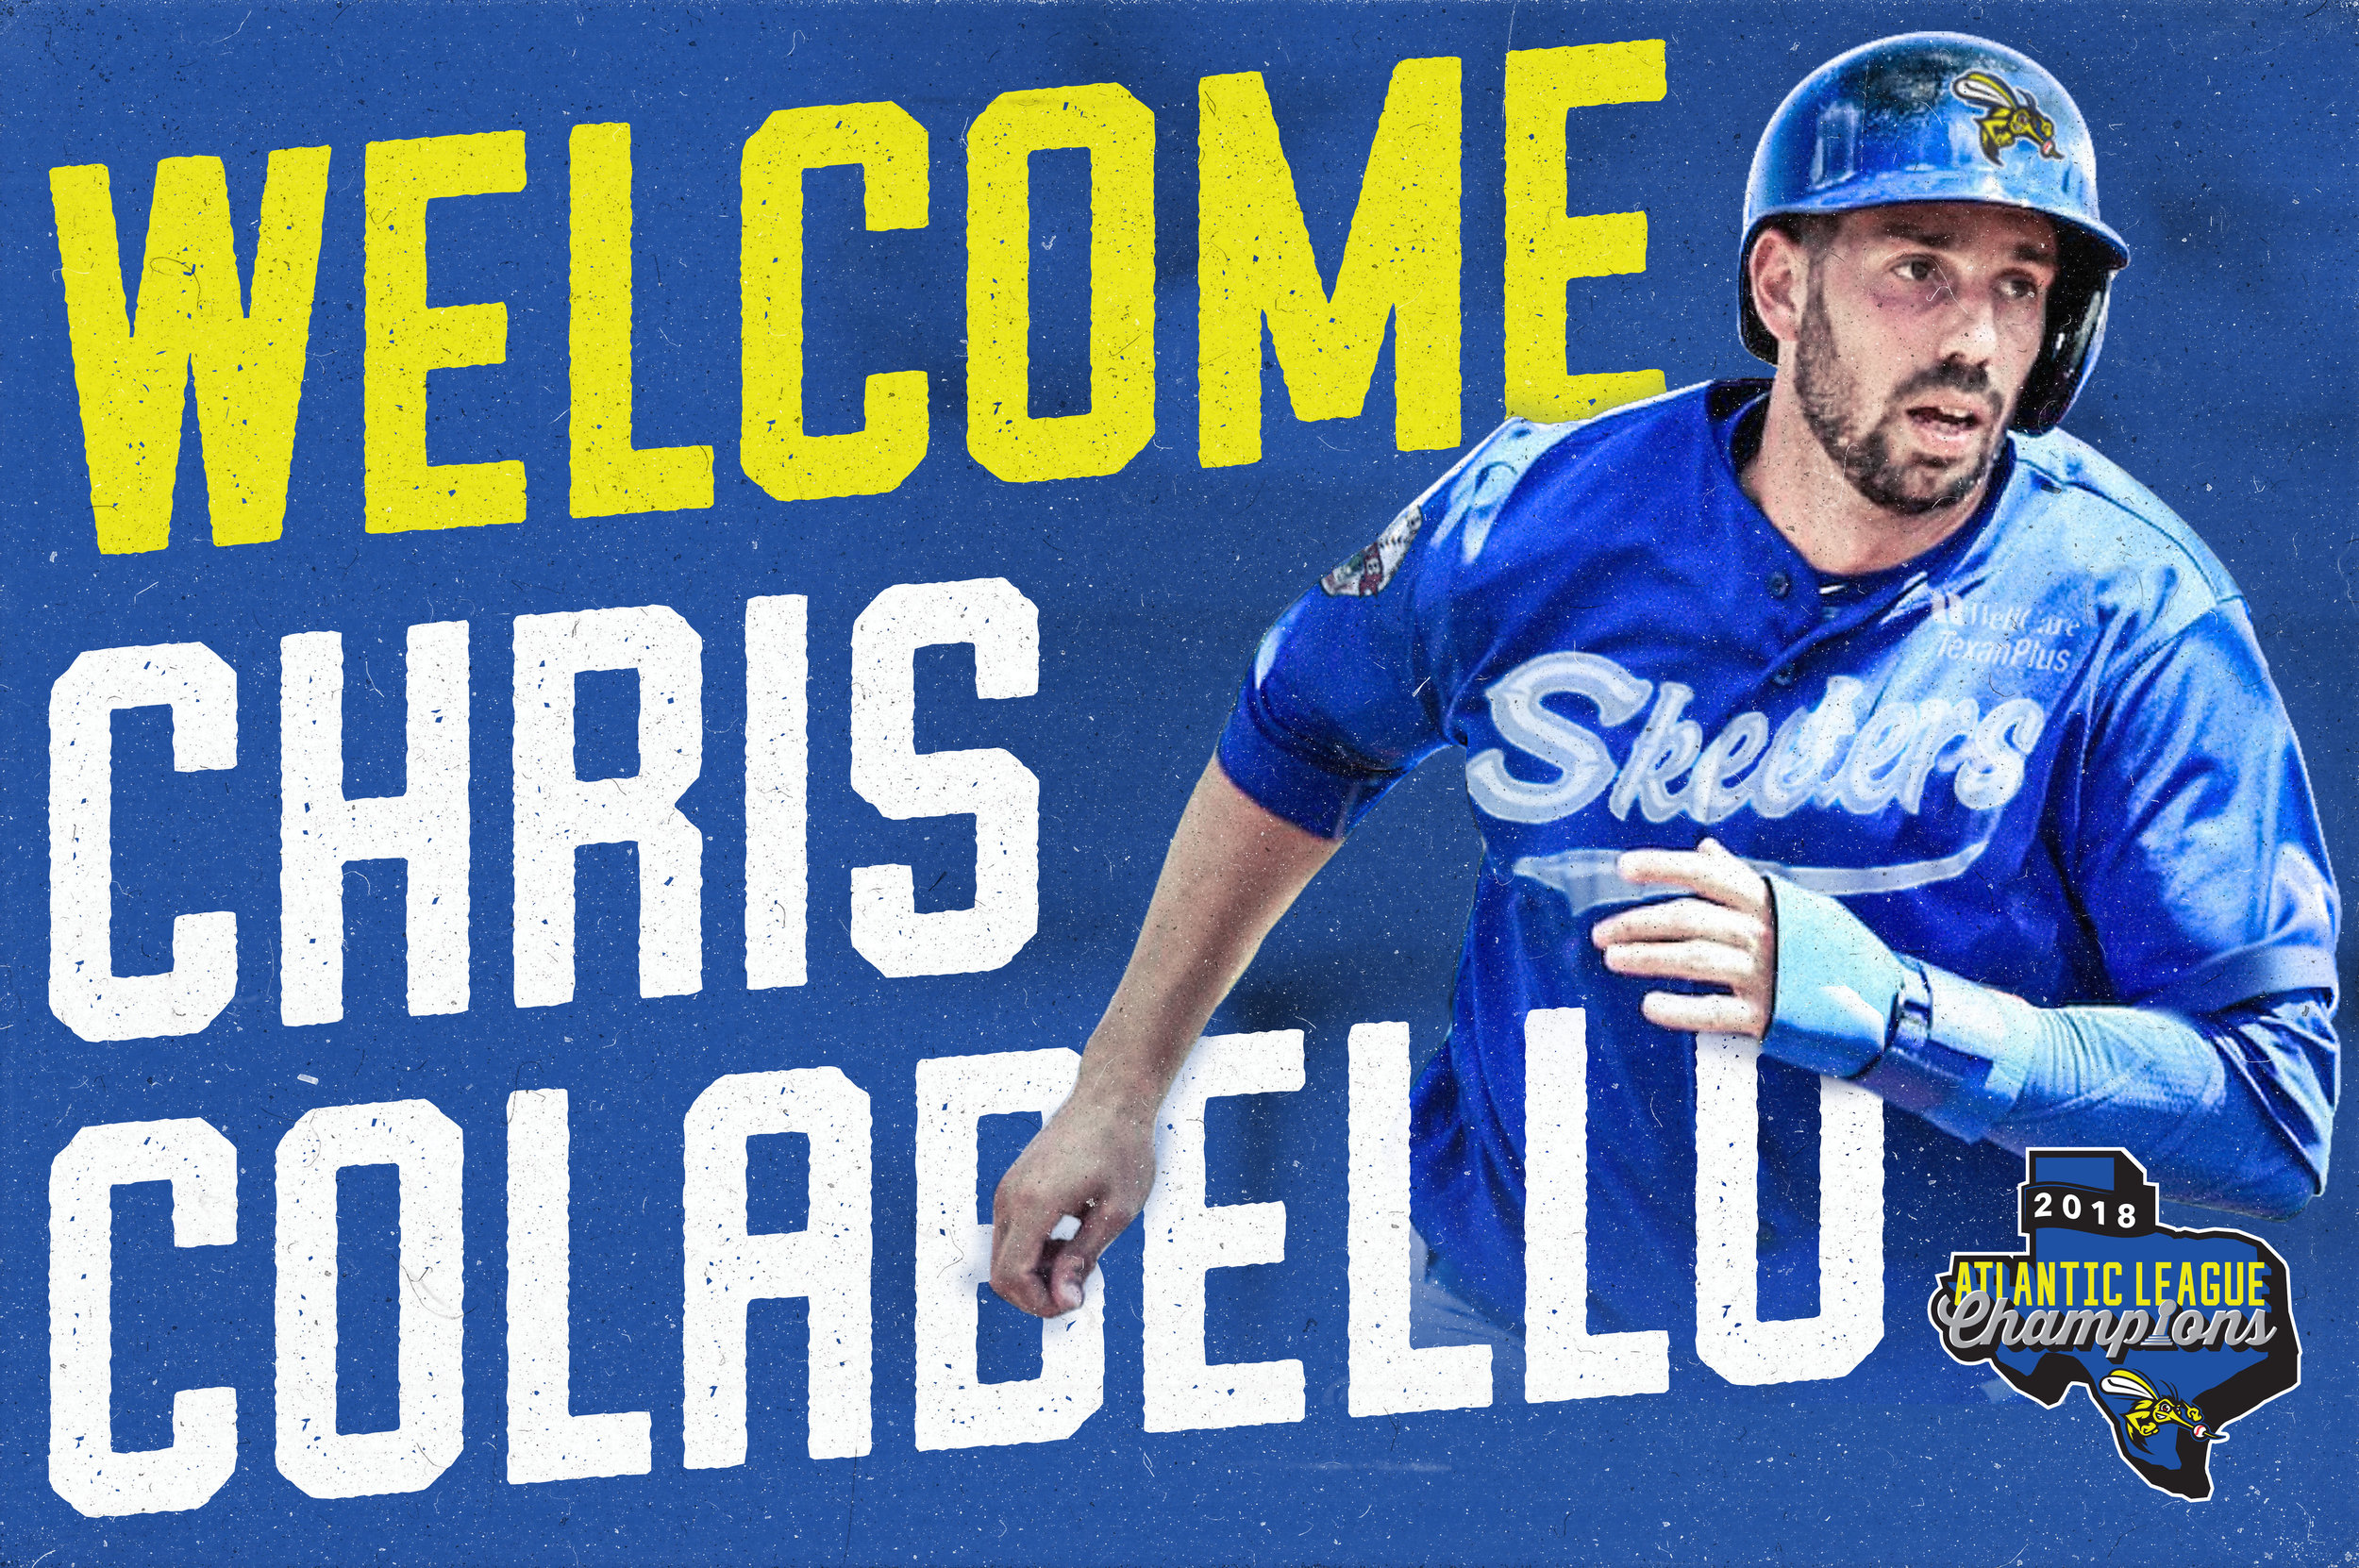 Chris Colabello, a key member of the Toronto Blue Jays' 2015 division-winning squad, is playing for the independent Sugar Land Skeeters this season. Photo: Sugarland Skeeters